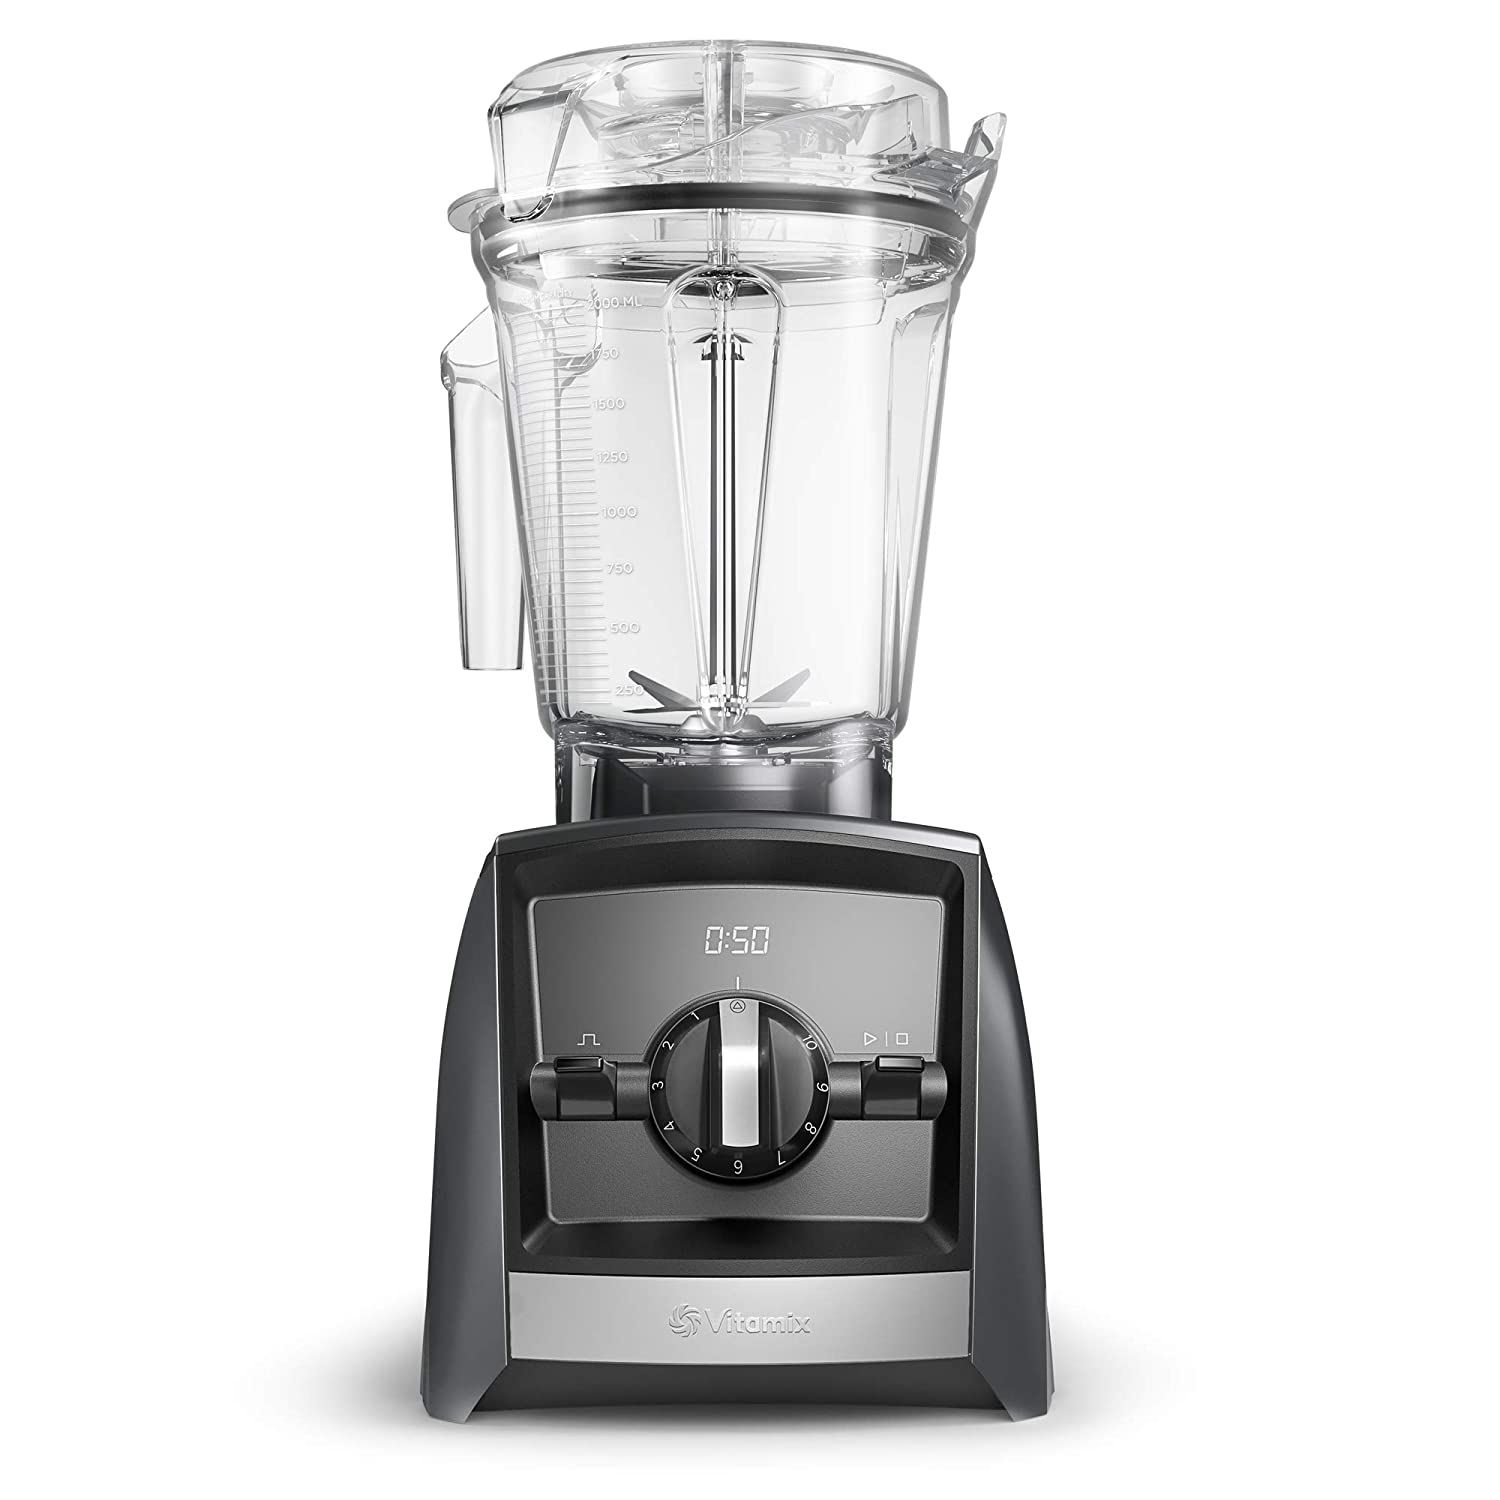 Vitamix vm0195d a2300i Ascent Series, 1200, Gris Pizarra